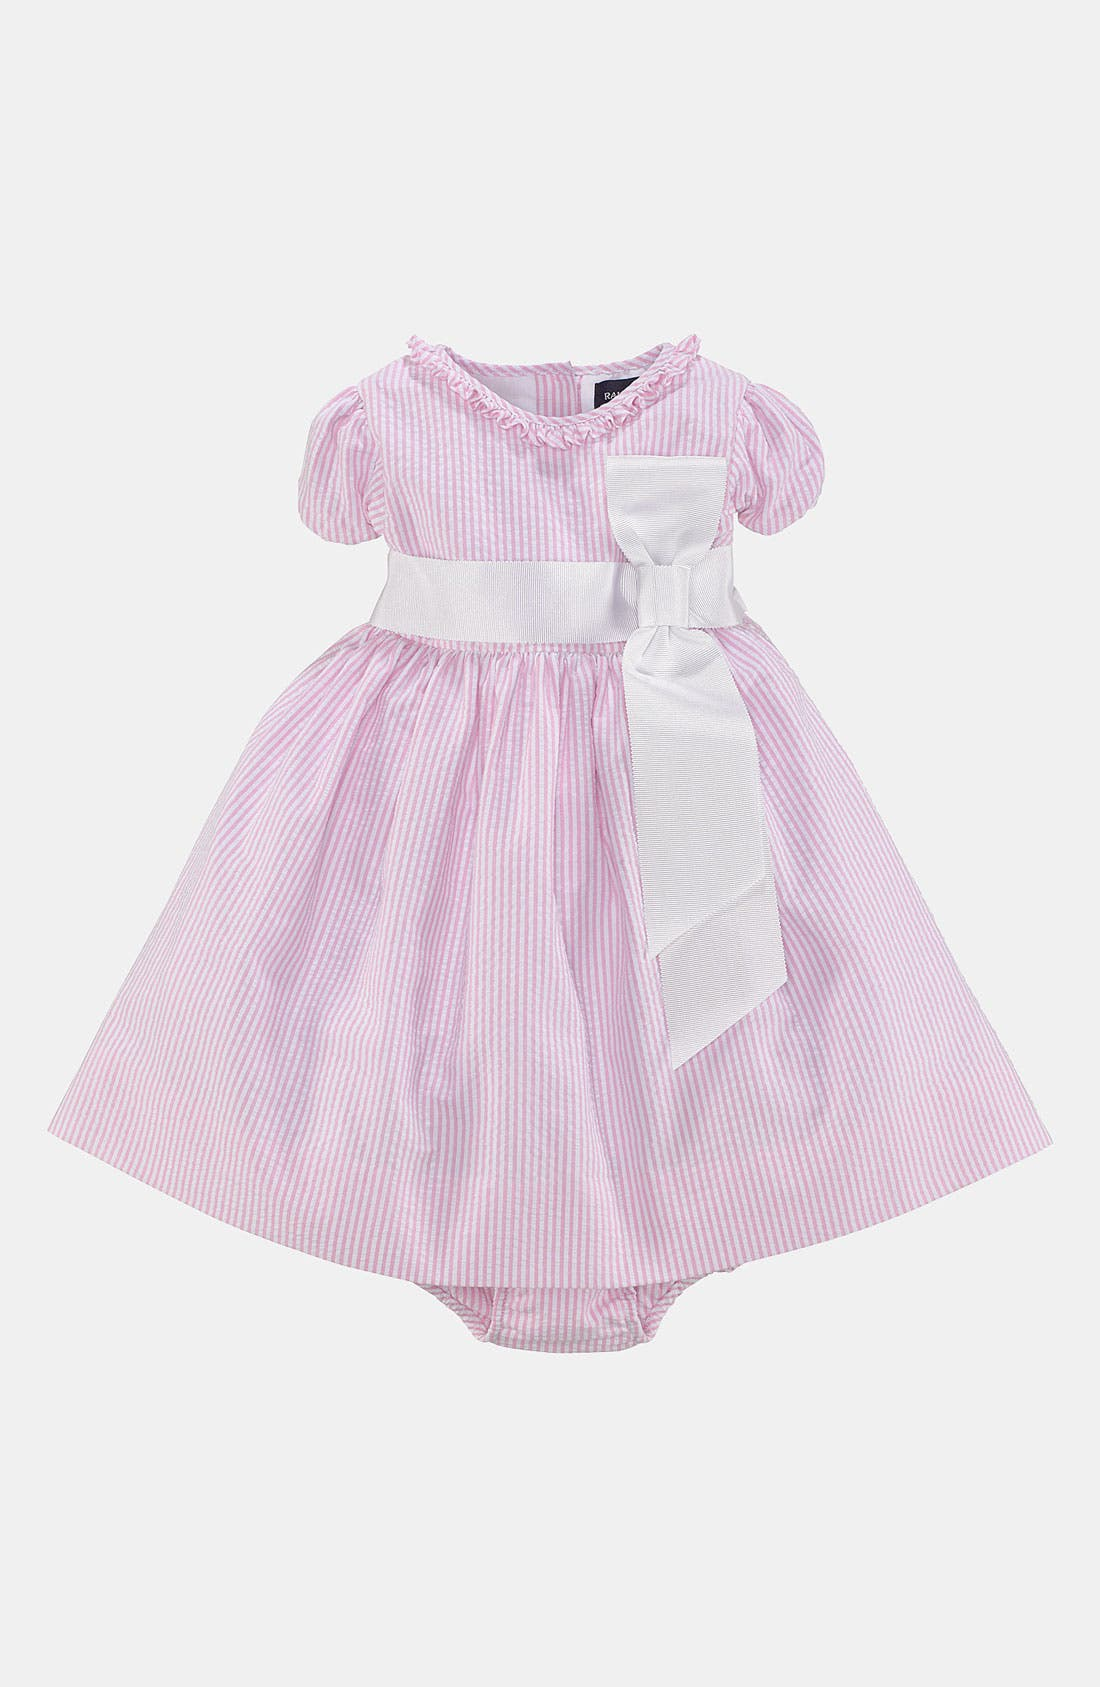 Alternate Image 1 Selected - Ralph Lauren Seersucker Dress & Bloomers (Baby Girls)